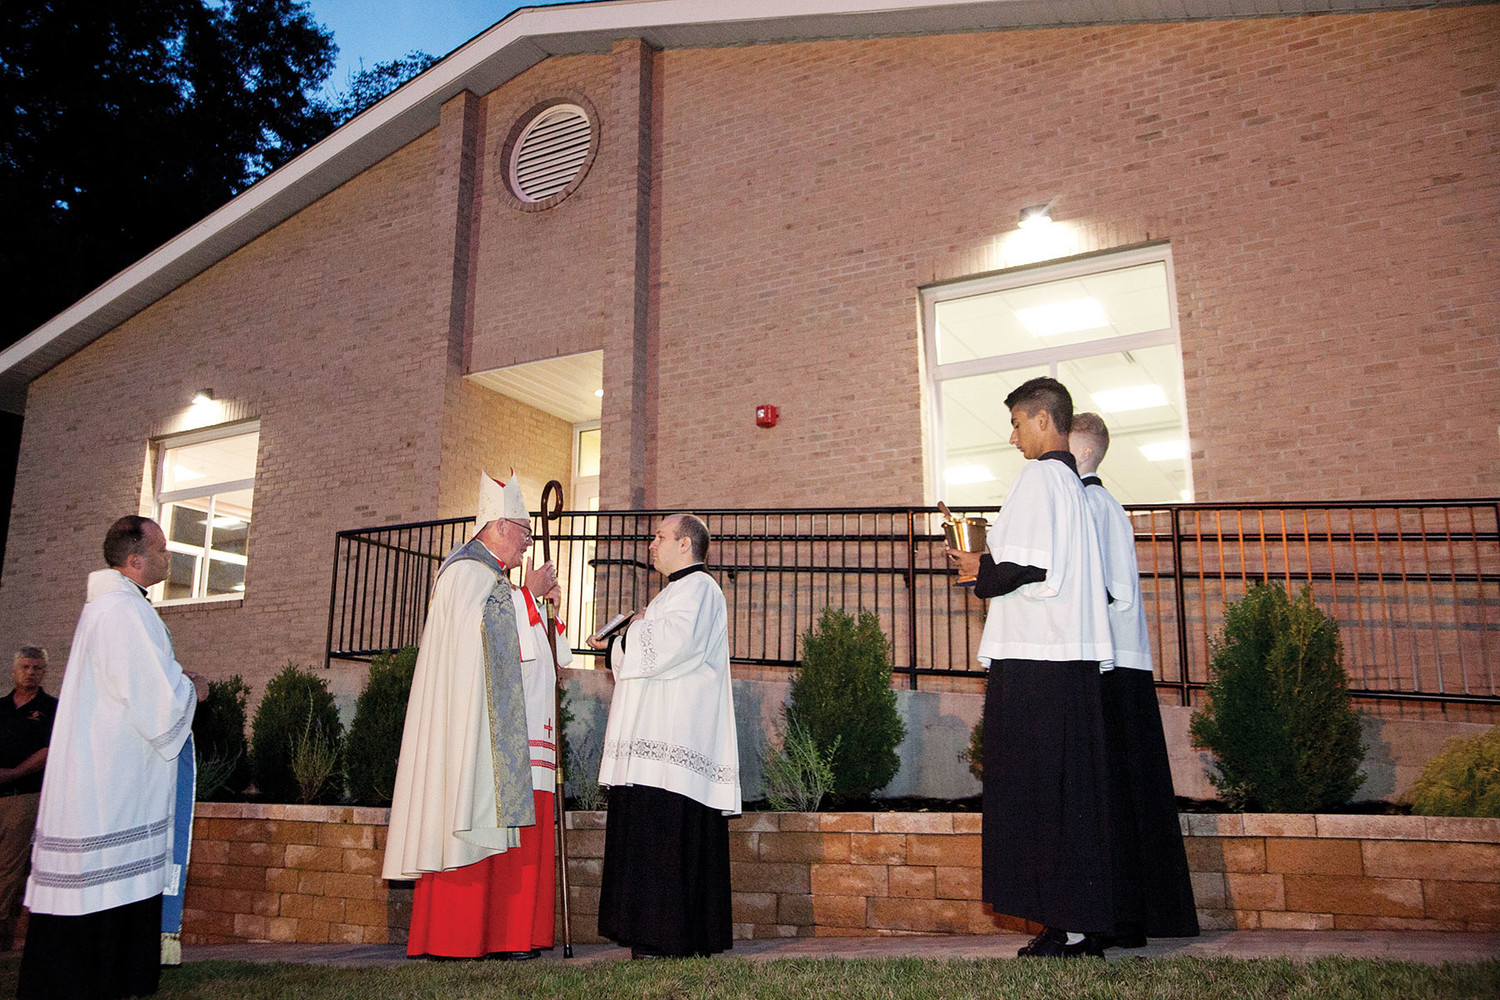 Cardinal Dolan blesses the new St. Mary's parish center in Washingtonville Sept. 7. The 7,000-square-foot center has 10 classrooms for religious education and parish offices.